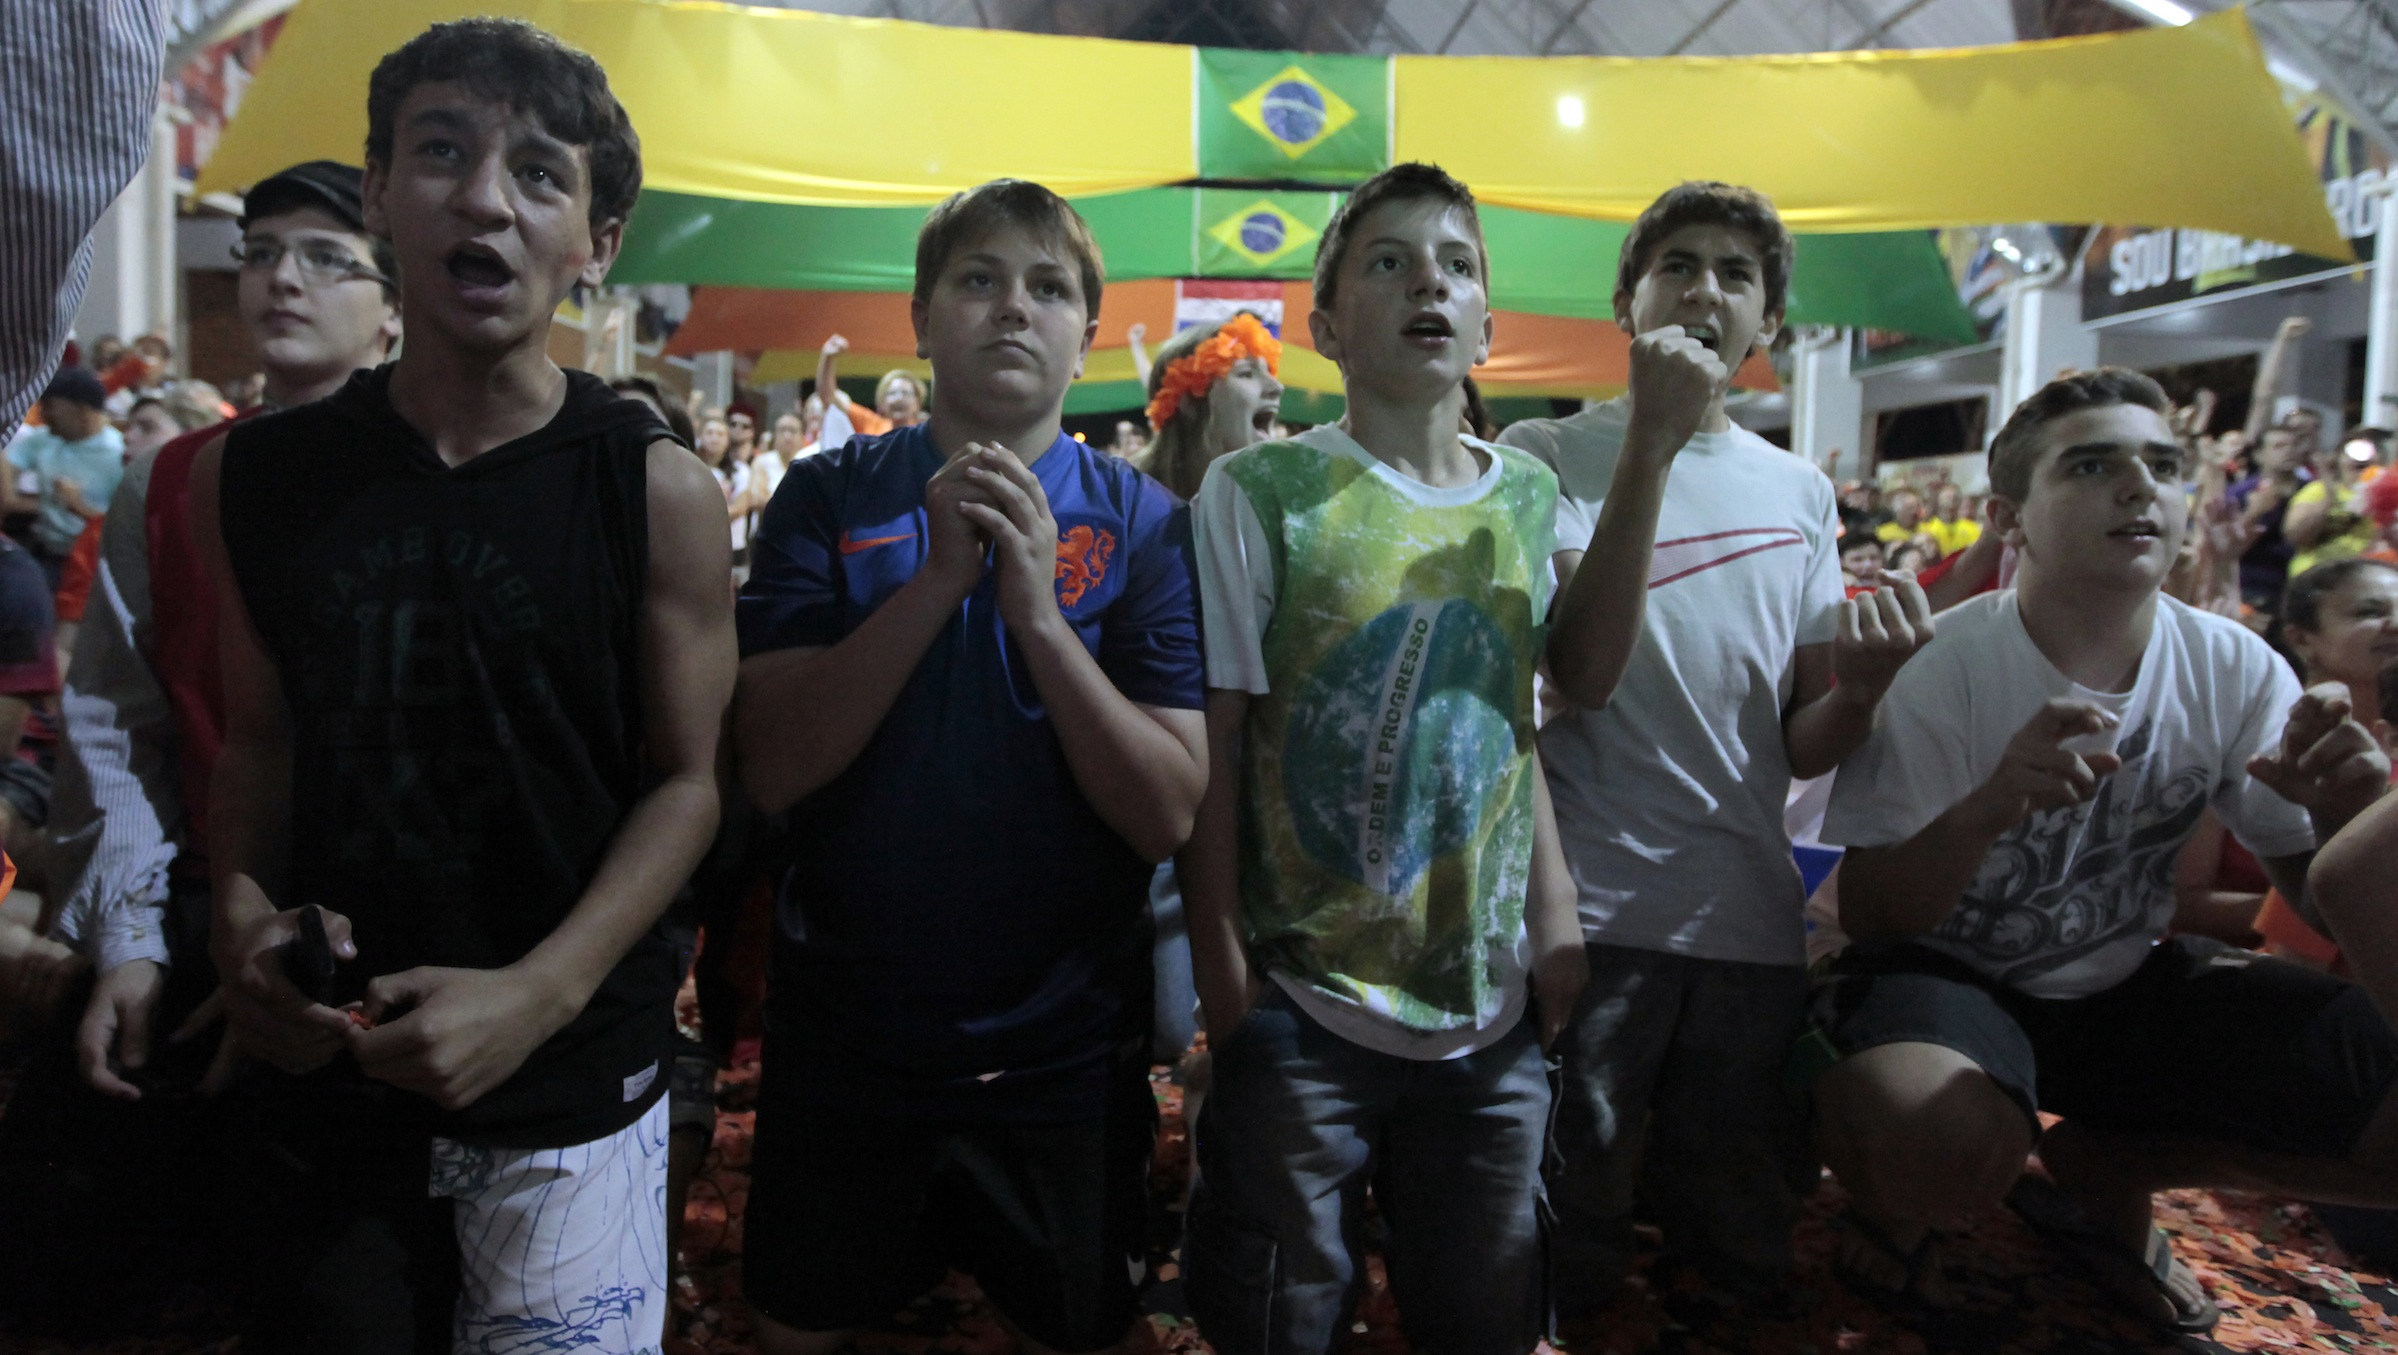 Fans kneel during the penalty shootout while watching a broadcast of the 2014 Brazil World Cup quarterfinal game between Costa Rica and the Netherlands in Holambra, a Dutch immigrant colony 140 kms north of Sao Paulo, July 5, 2014.  REUTERS/Paulo Whitaker (BRAZIL  - Tags: SPORT SOCCER WORLD CUP)   - RTR3XAJR